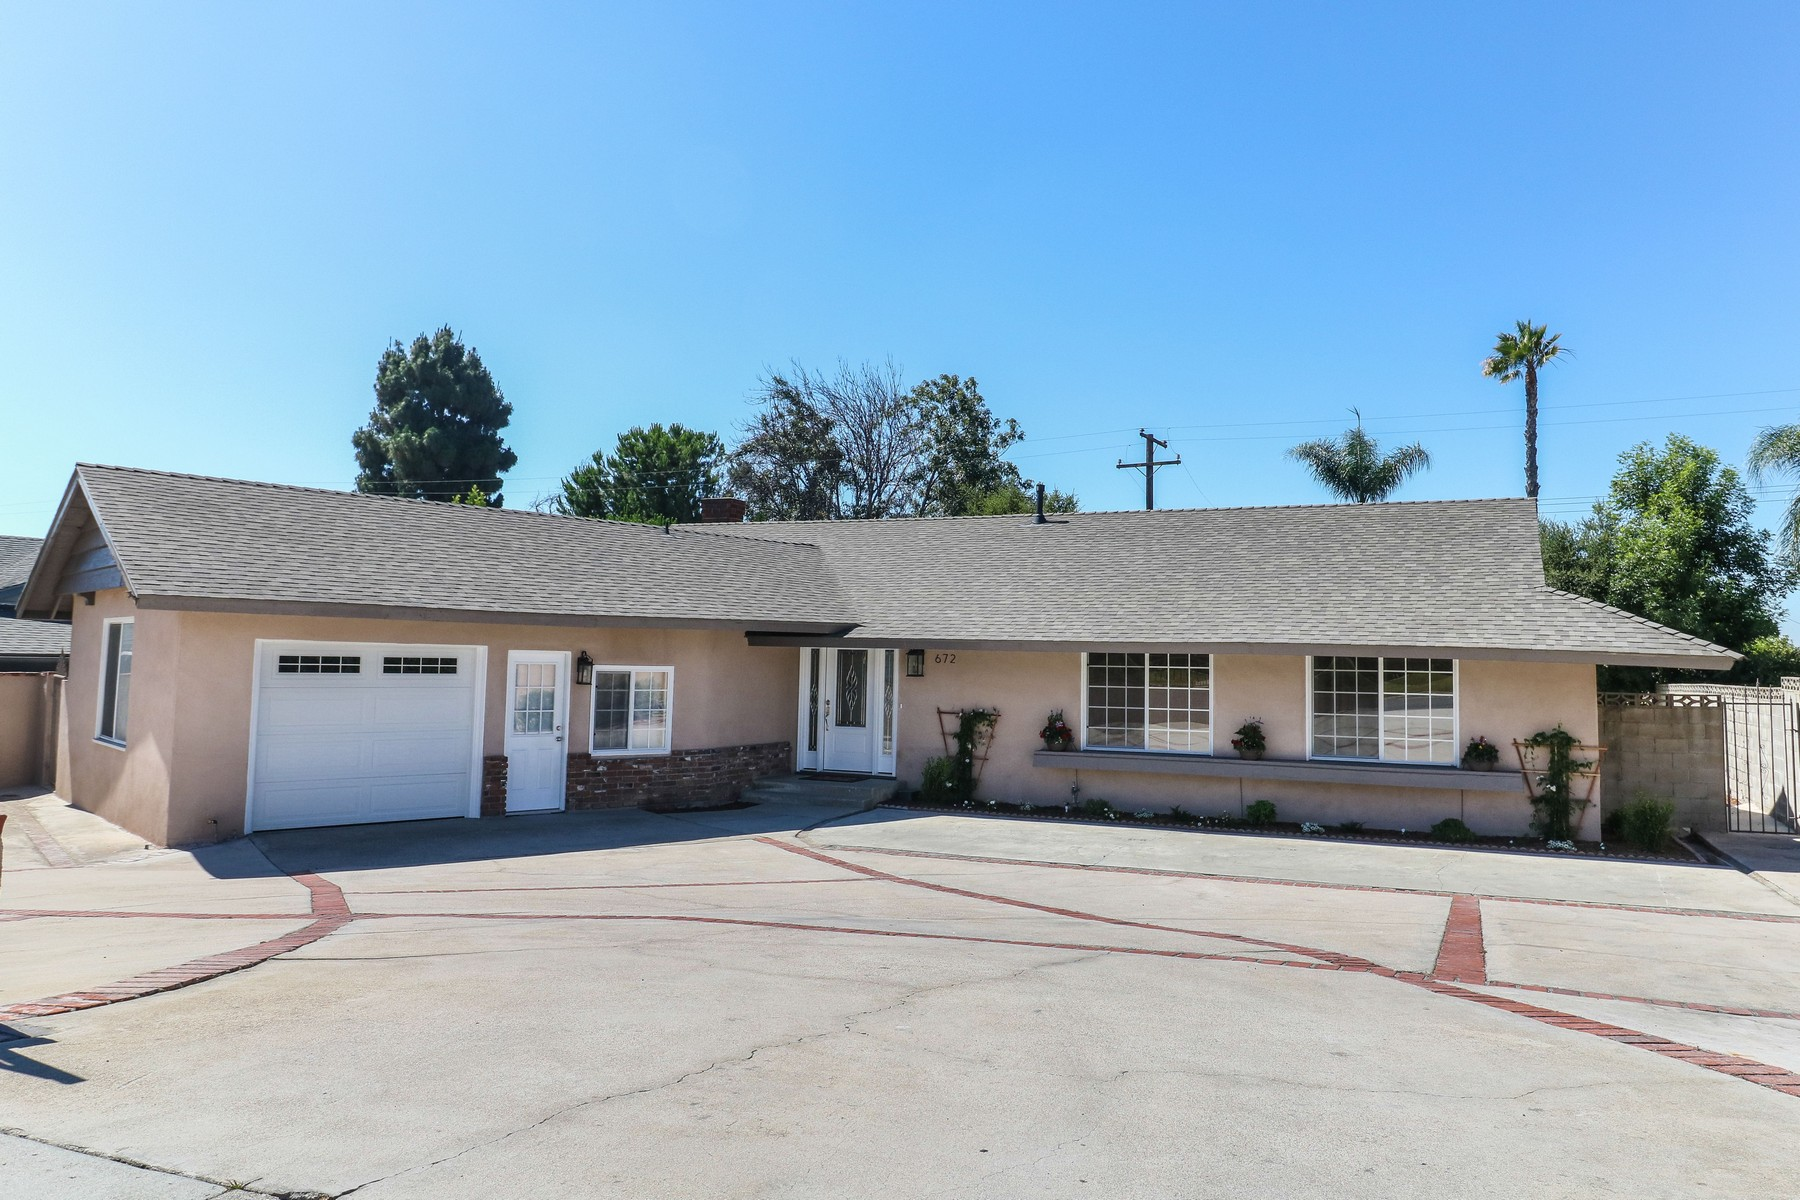 Single Family Homes for Sale at 672 W. 16th Street, Upland, CA 91784 672 W. 16th Street Upland, California 91784 United States